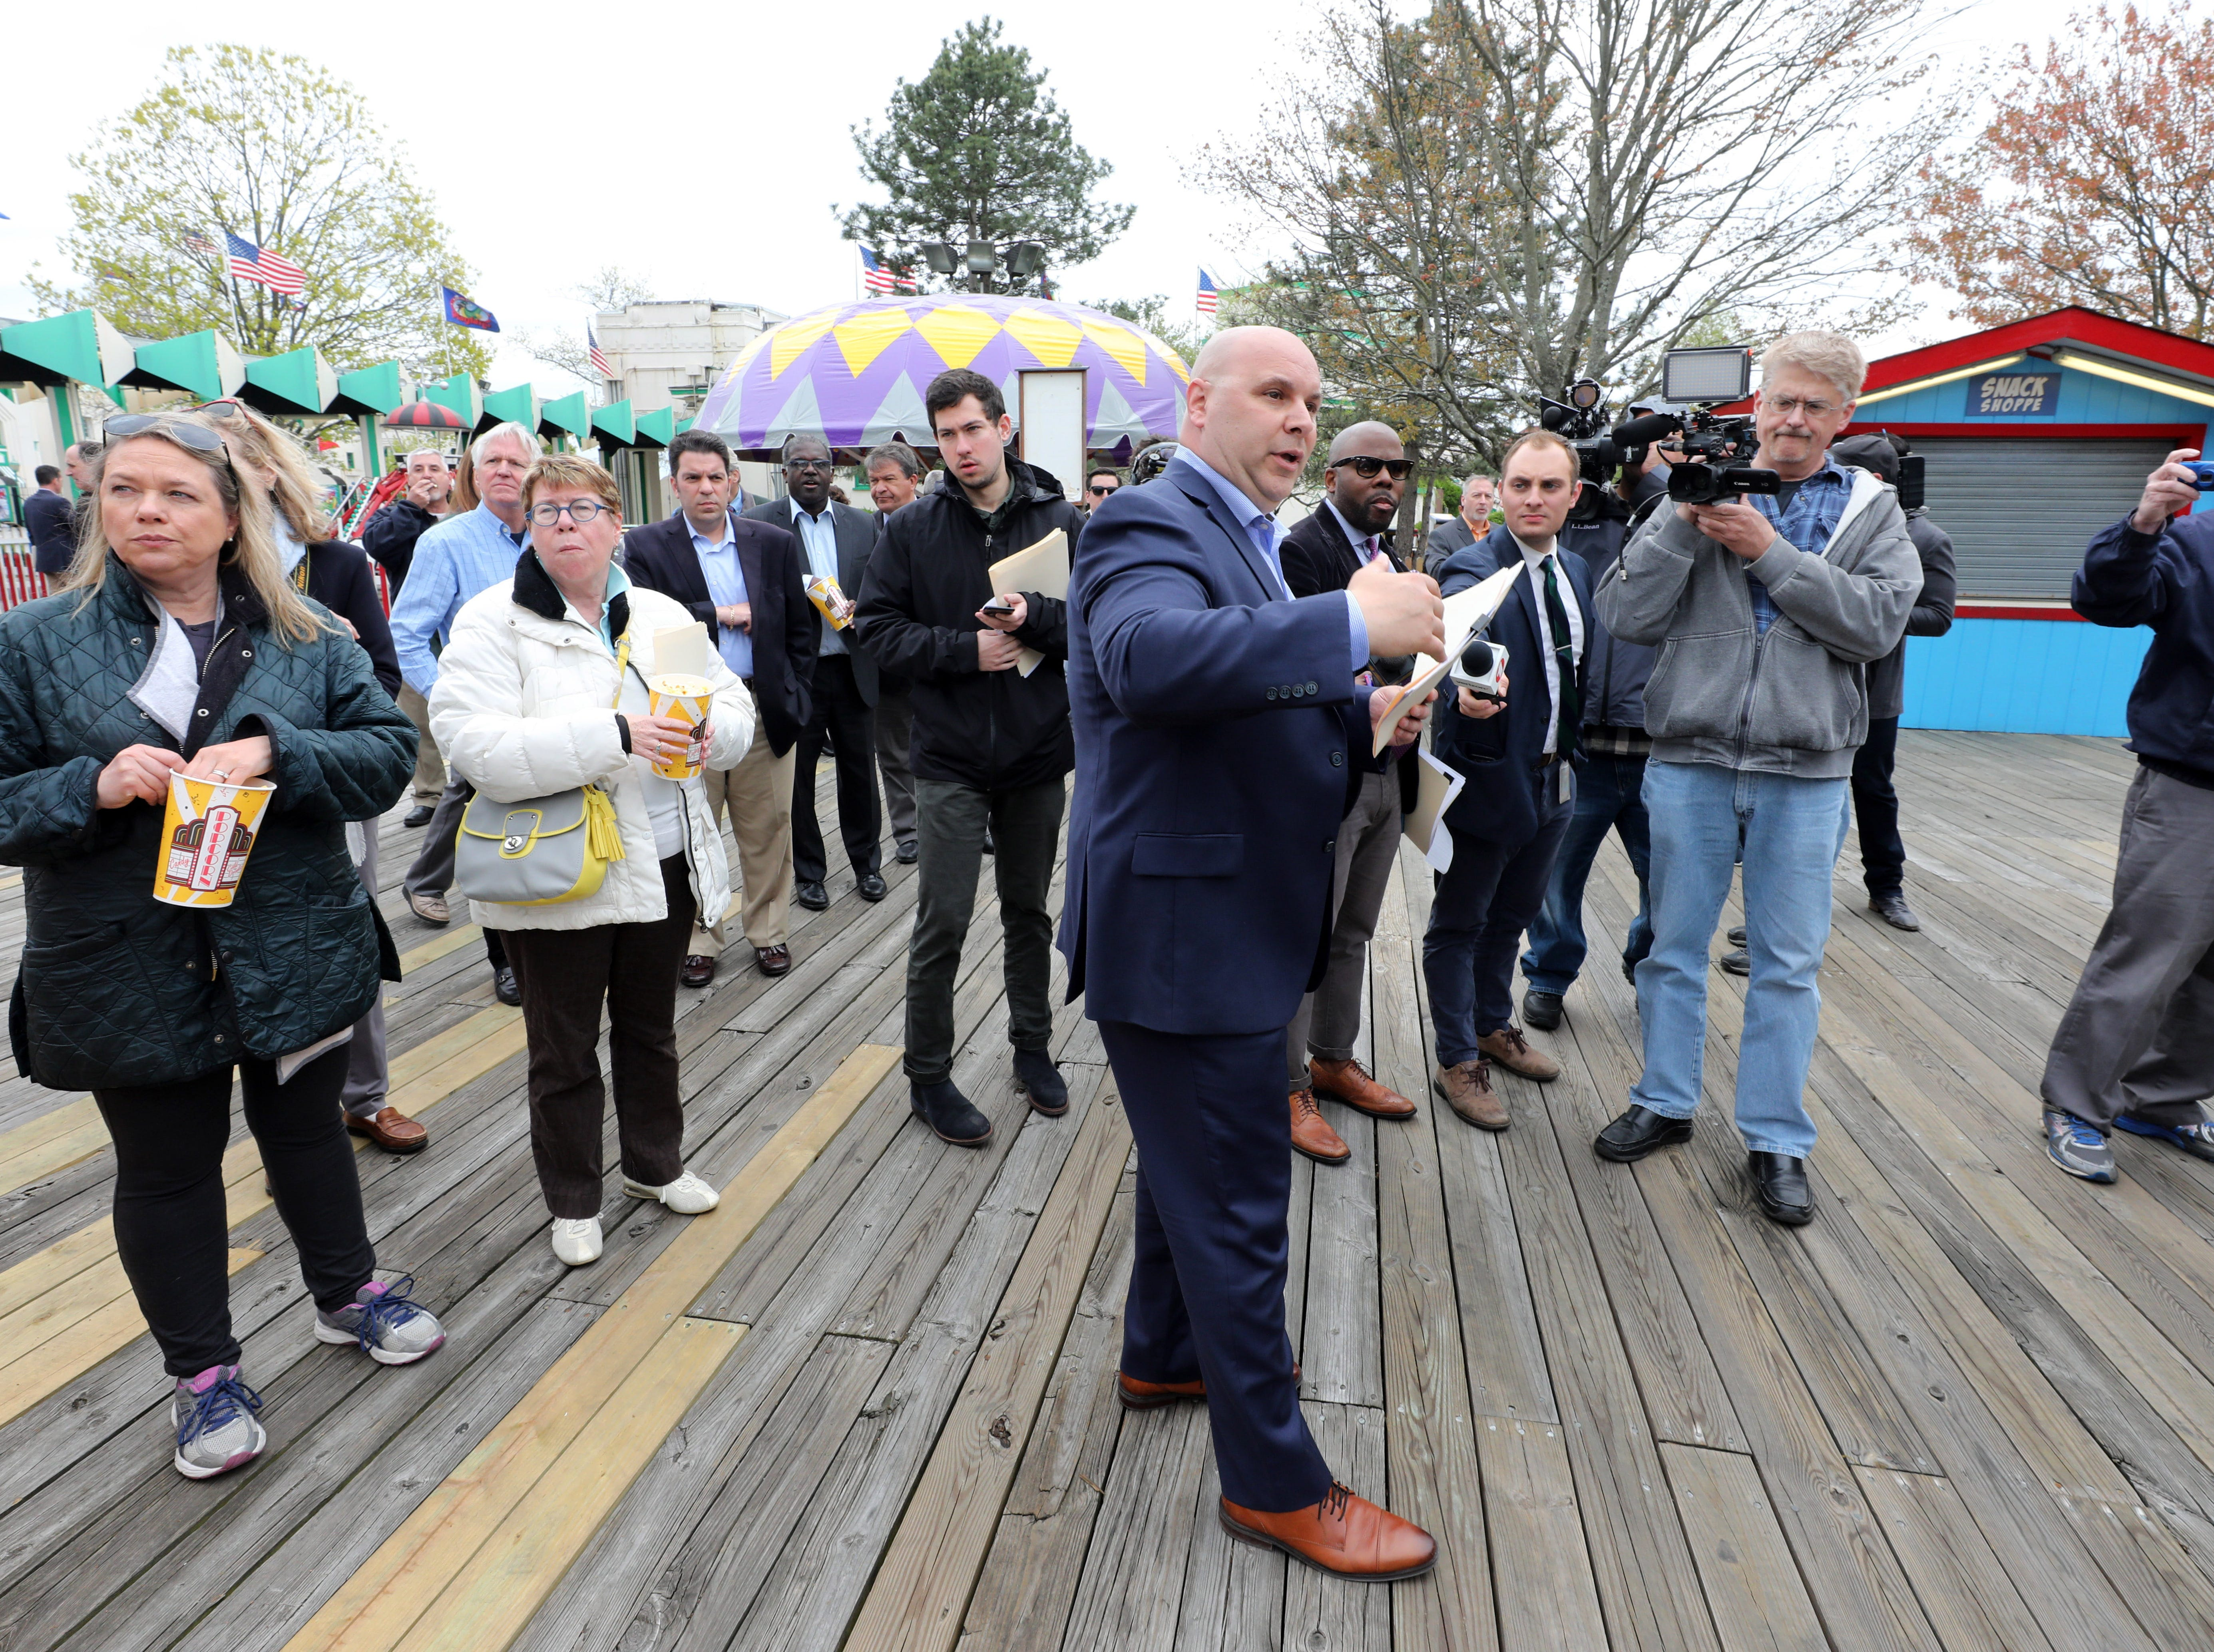 """Frank Carrieri, the general manager at Playland, talks about ride safety in the kiddyland area, during a """"ride and food safety tour"""" for the media, at Playland in Rye, May 9, 2019."""